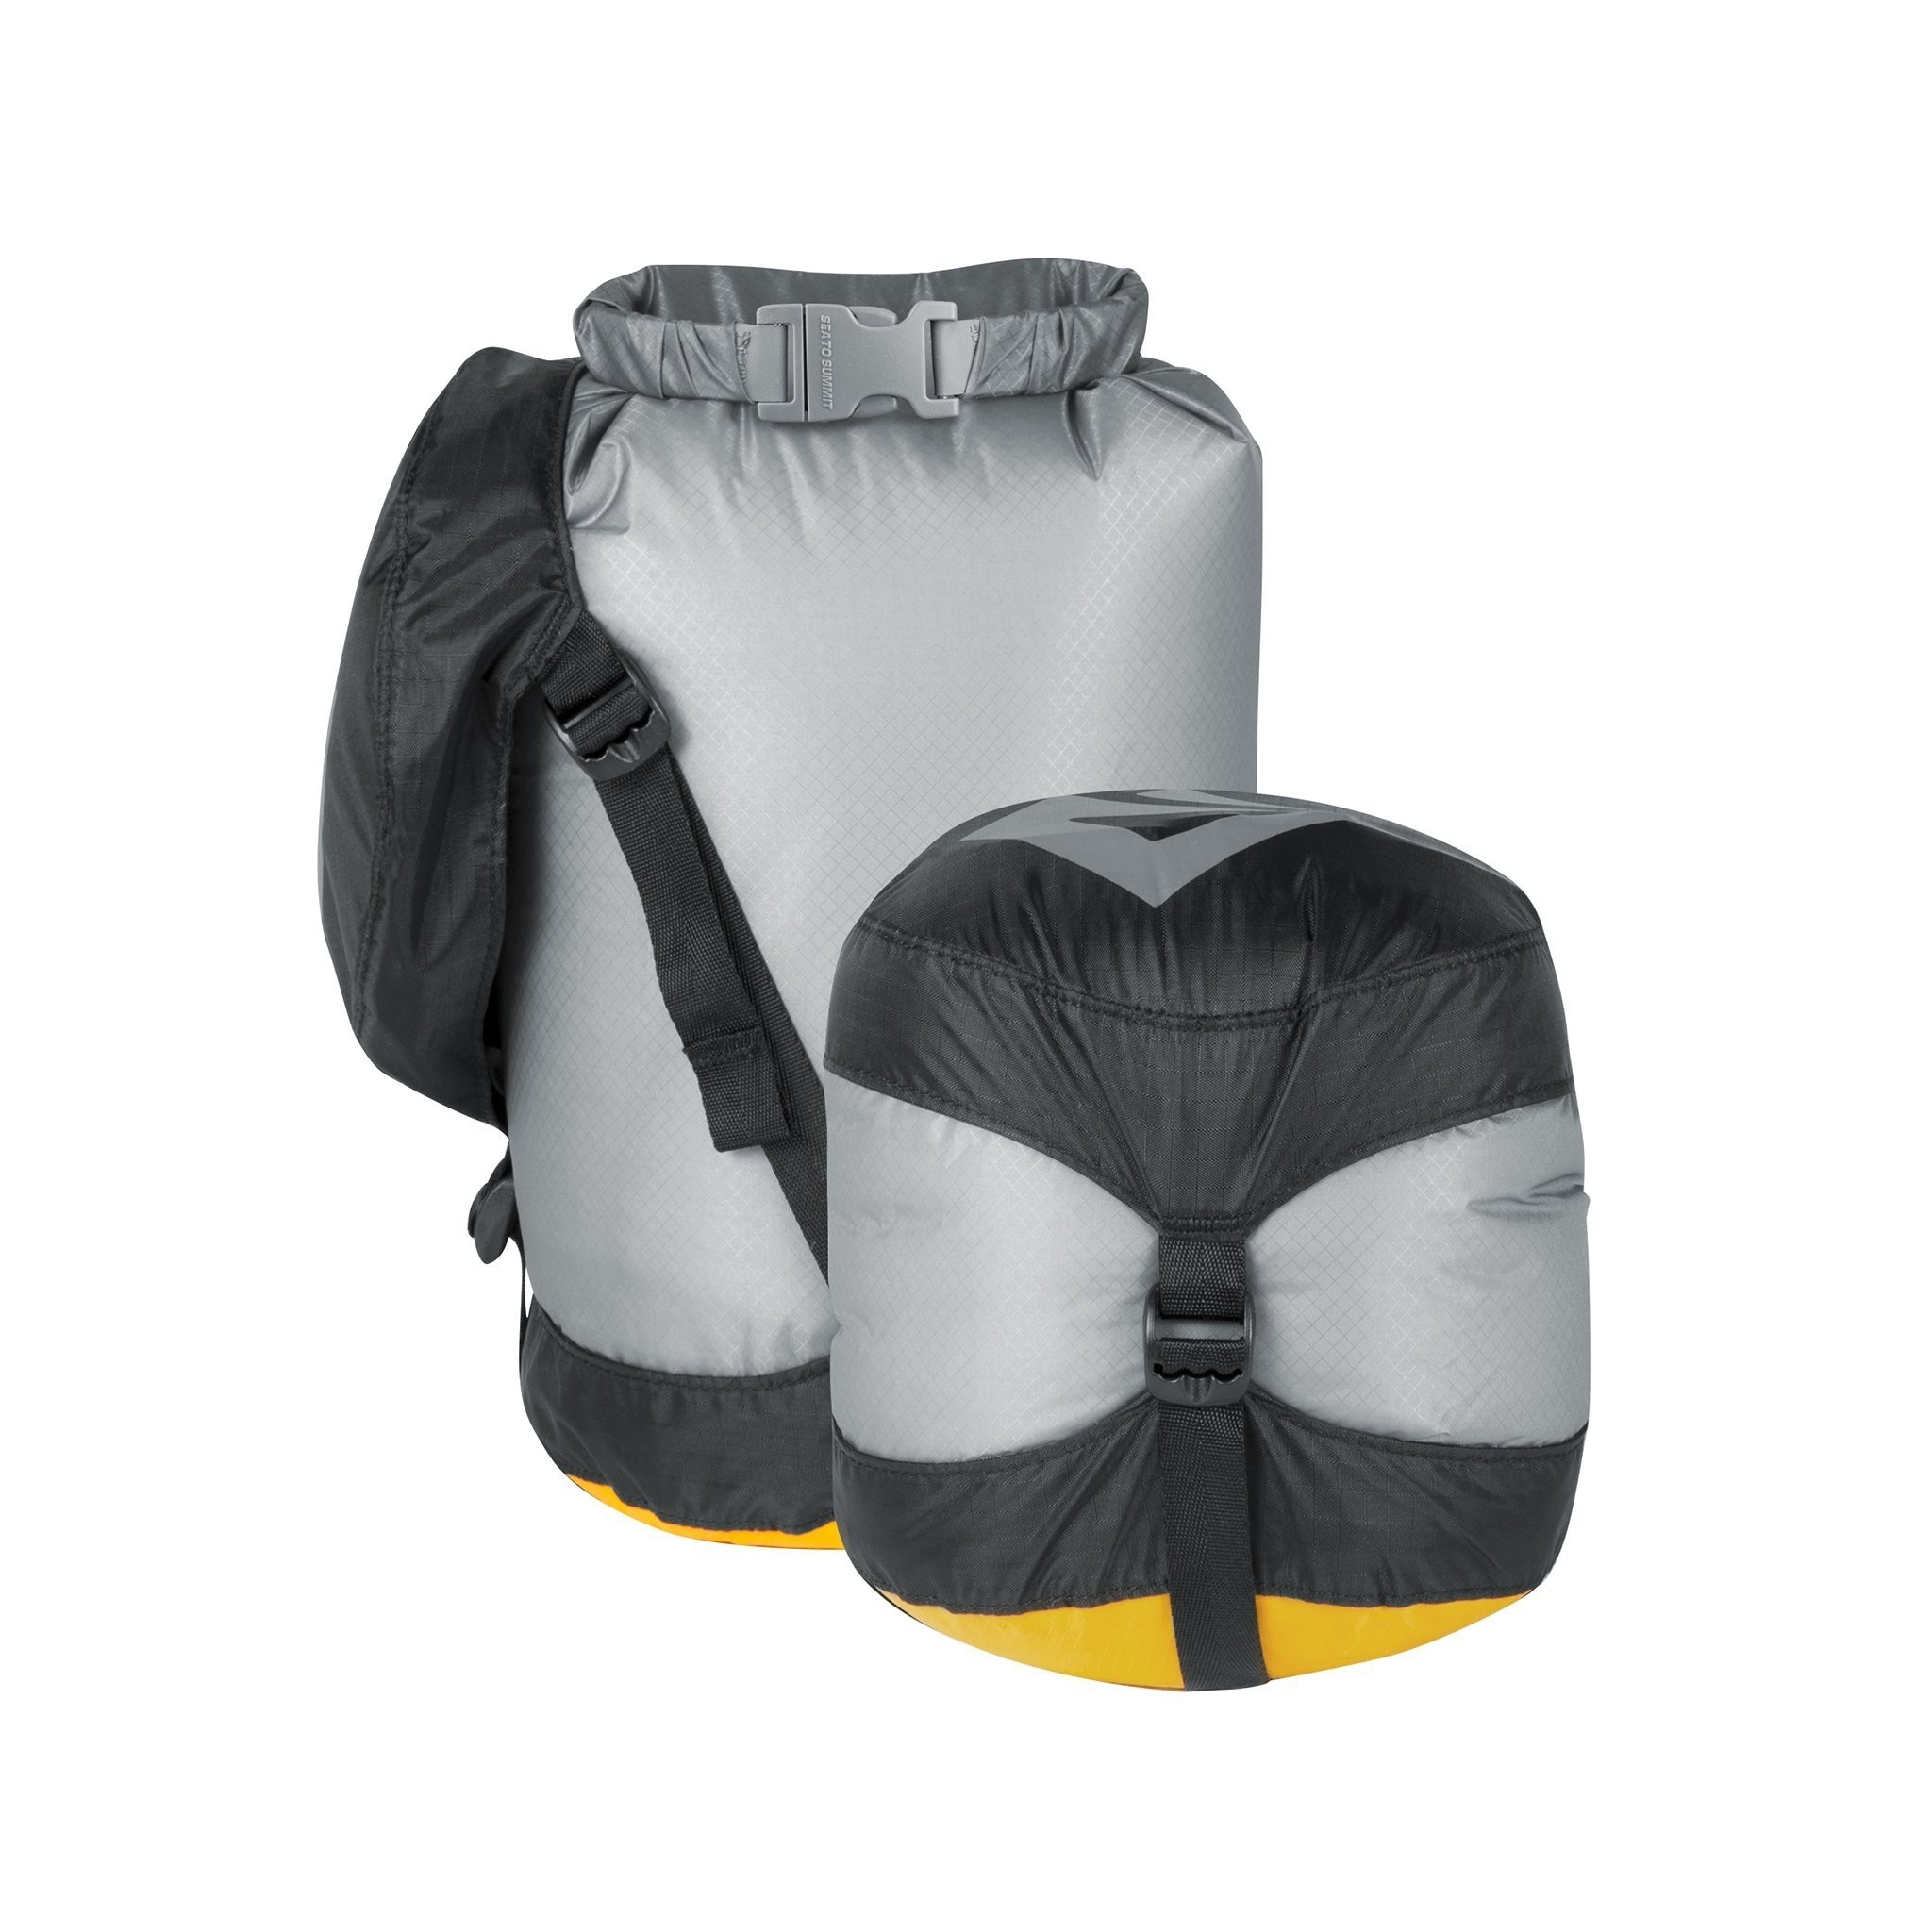 Sea to Summit Ultra-Sil eVent Dry Compression Sack XS - 6L